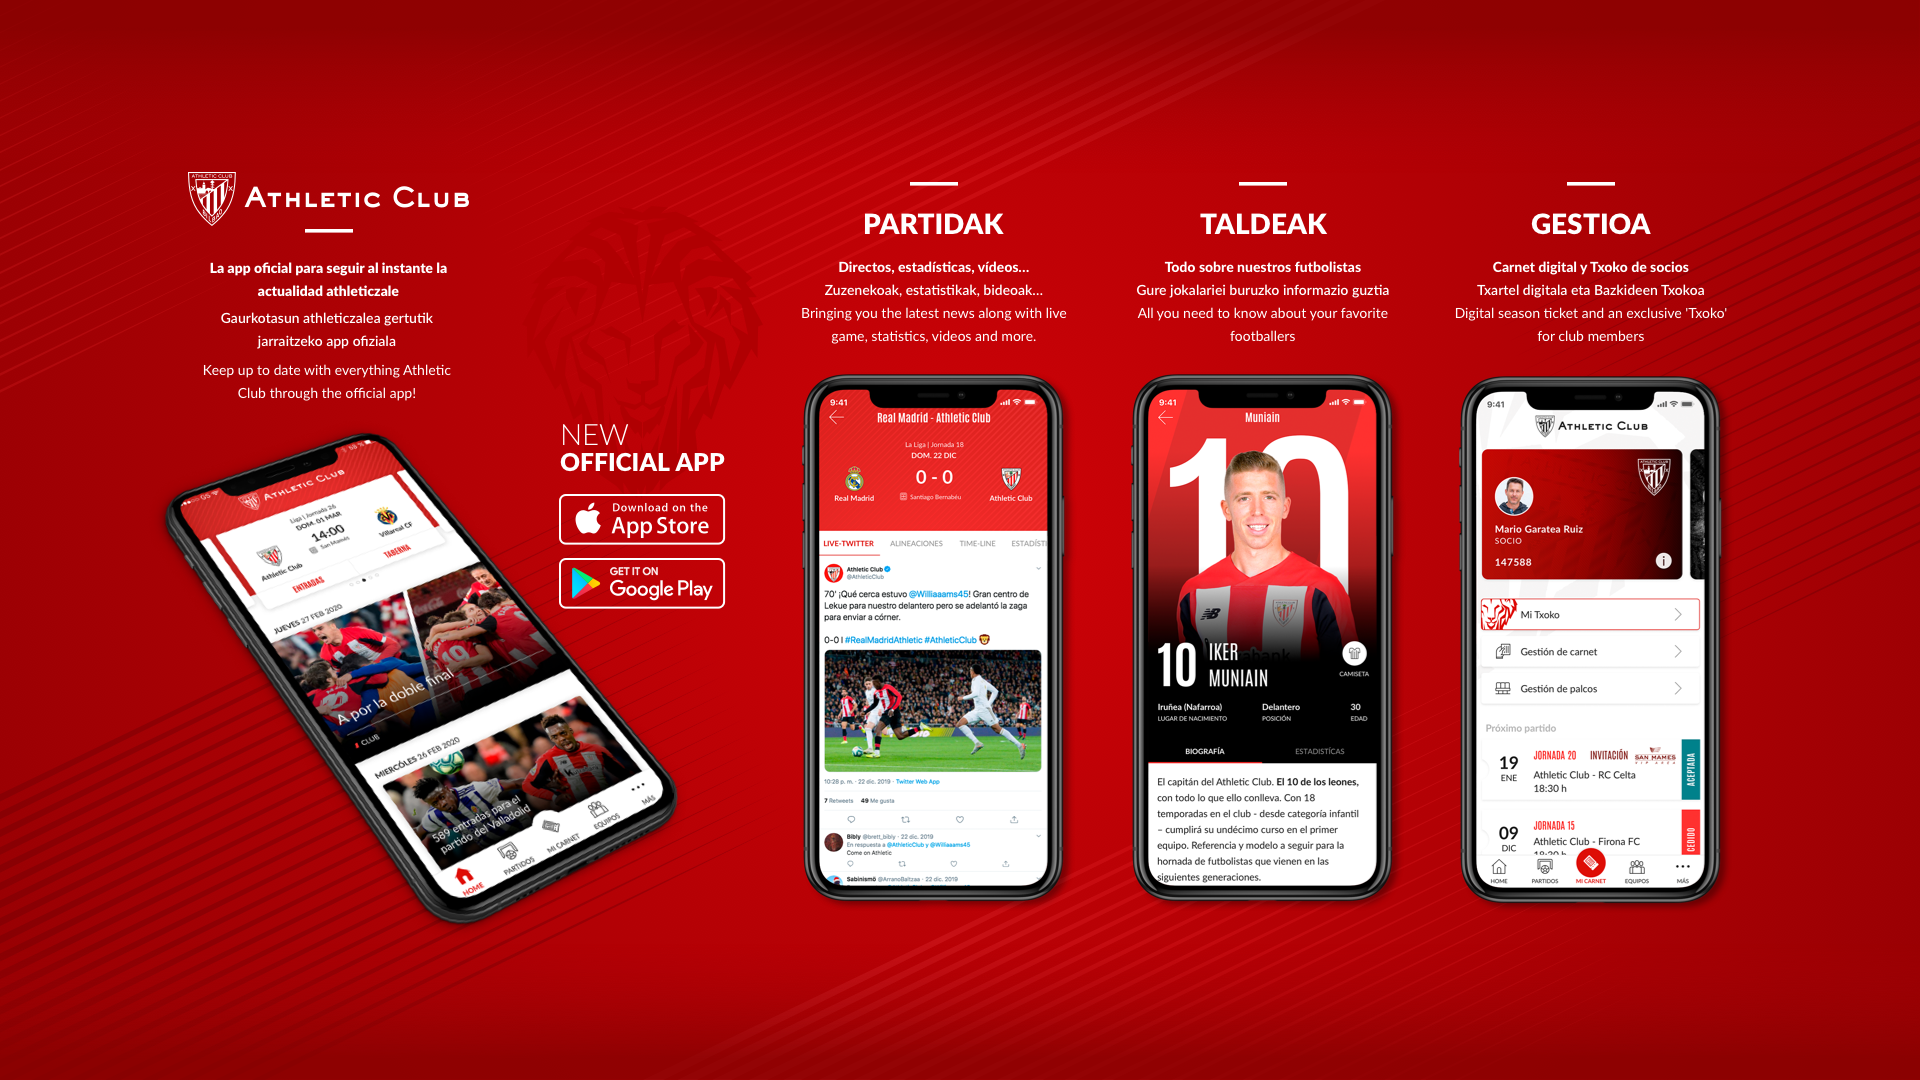 Nueva app oficial del Athletic Club